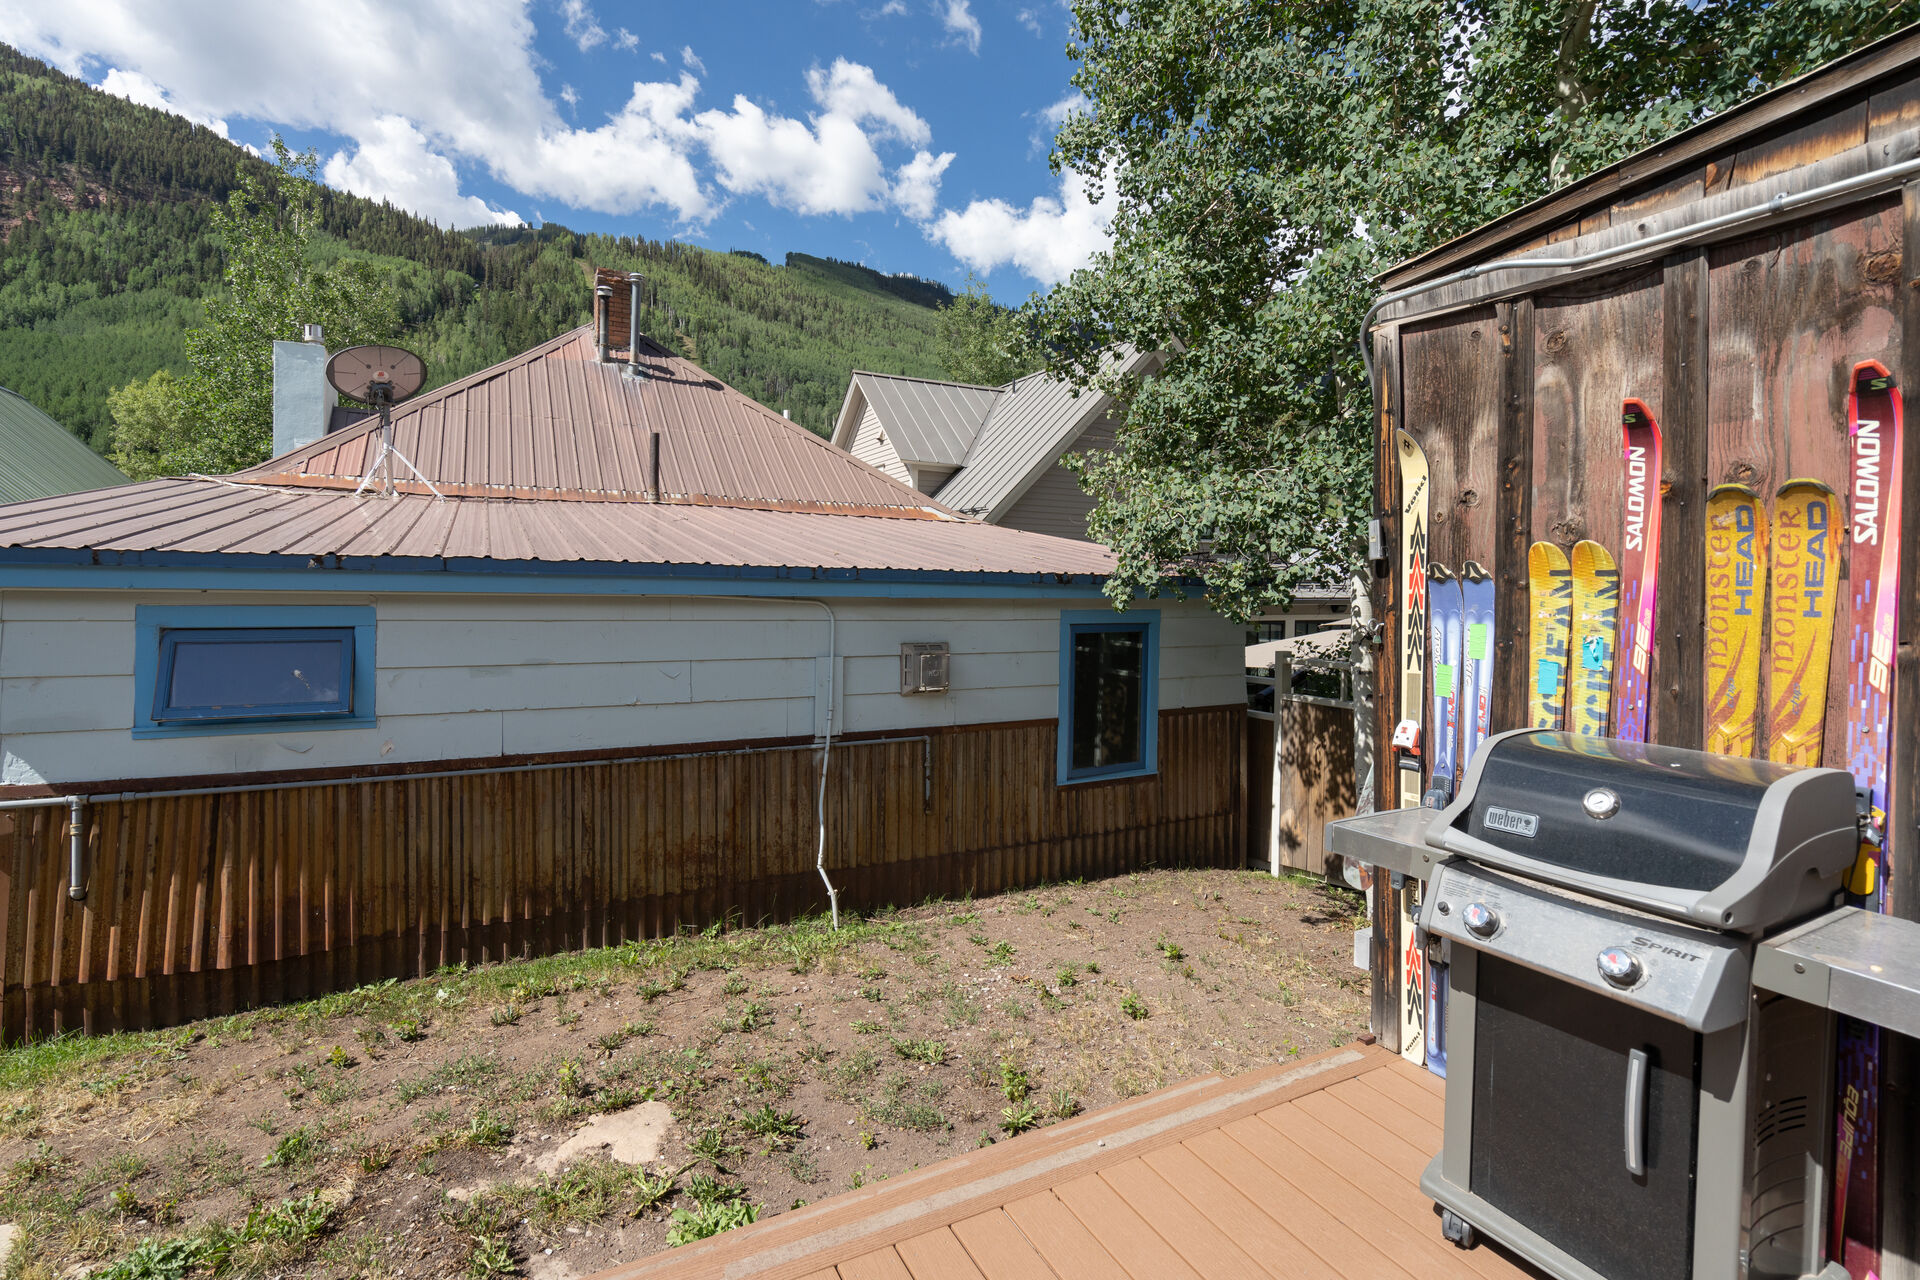 A view of the backyard of this holiday home in Telluride.